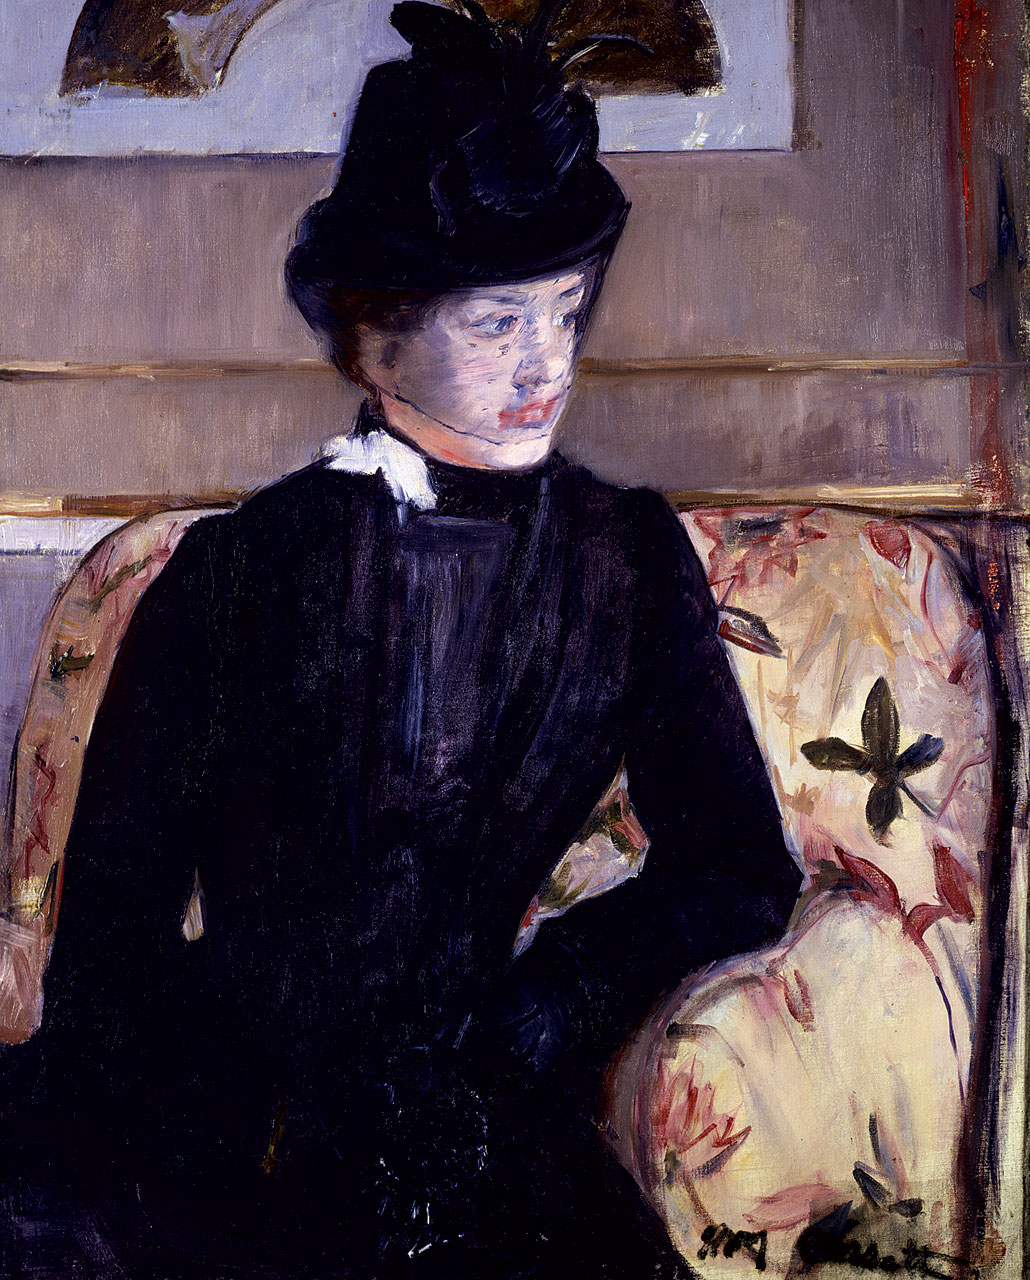 YOUNG WOMAN IN BLACK by Mary Cassatt, oil on canvas, 80.0 x 63.5 centimeters, 1883.  Collection of the Maryland   State Archives: The Peabody Art Collection .